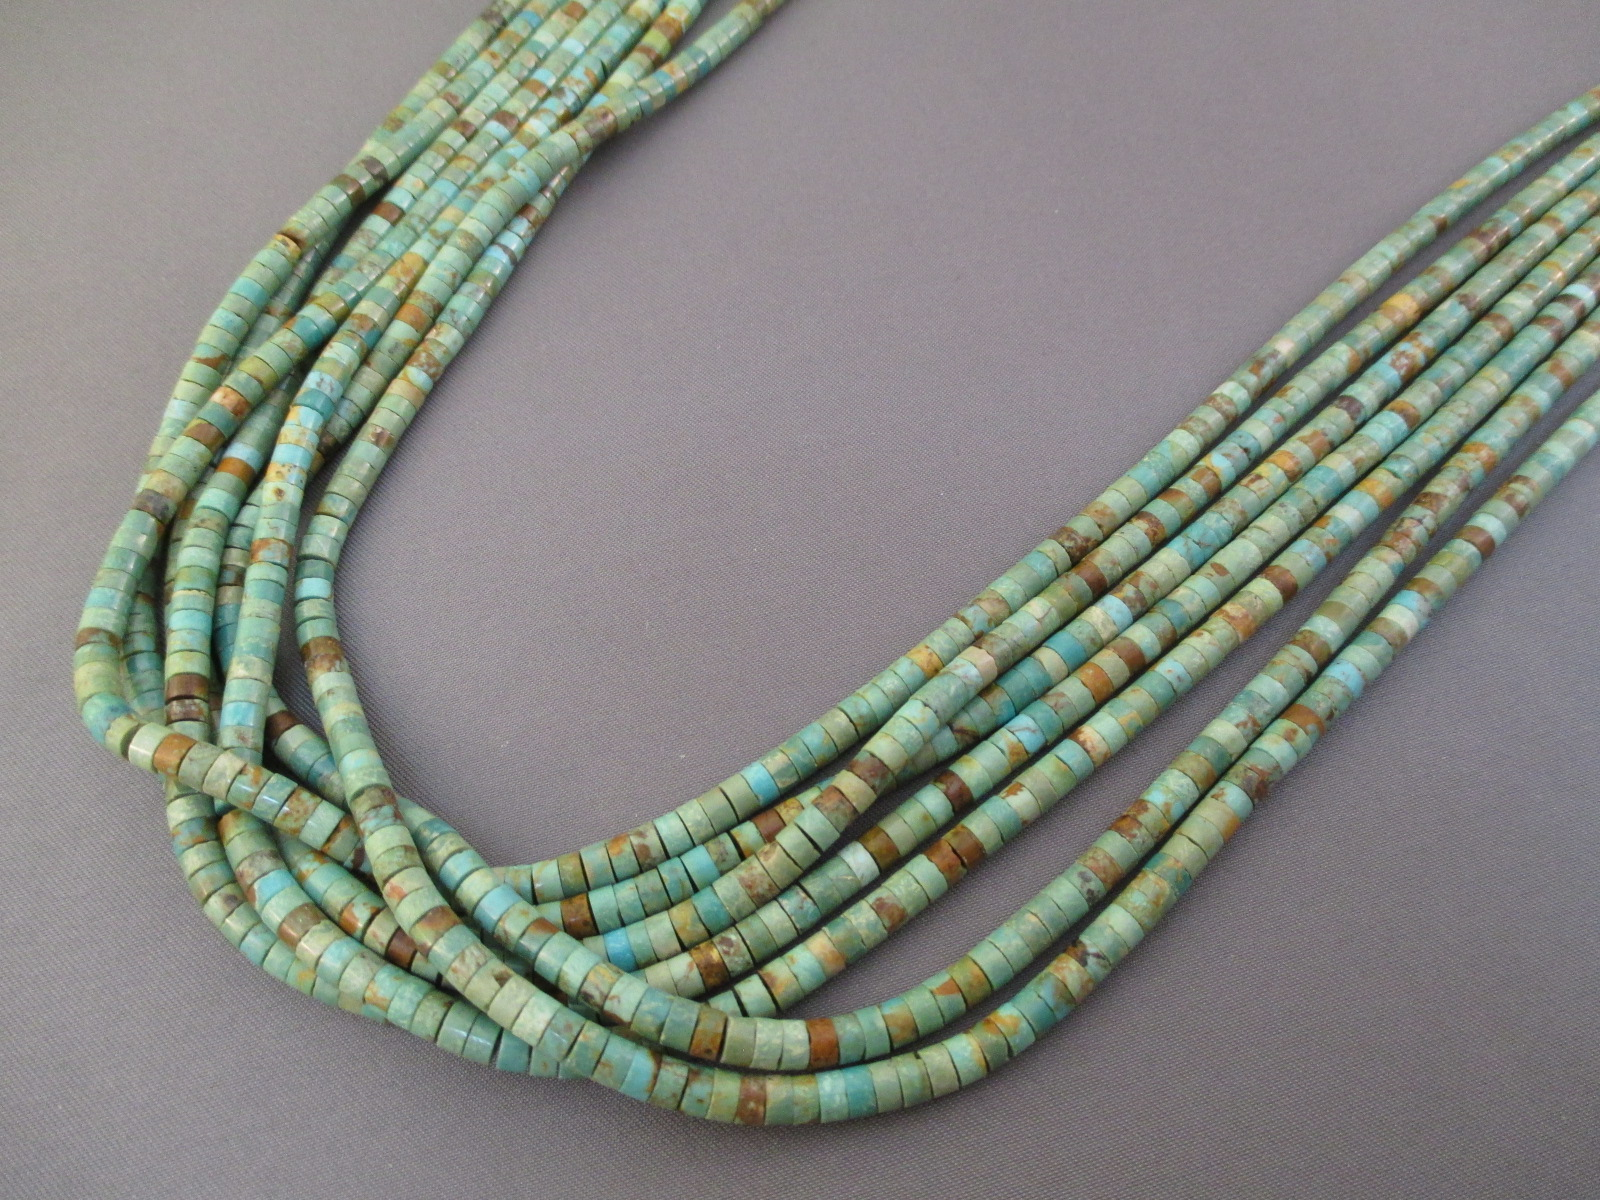 turquoise atencio necklace ten santo domingo heishi strand lita